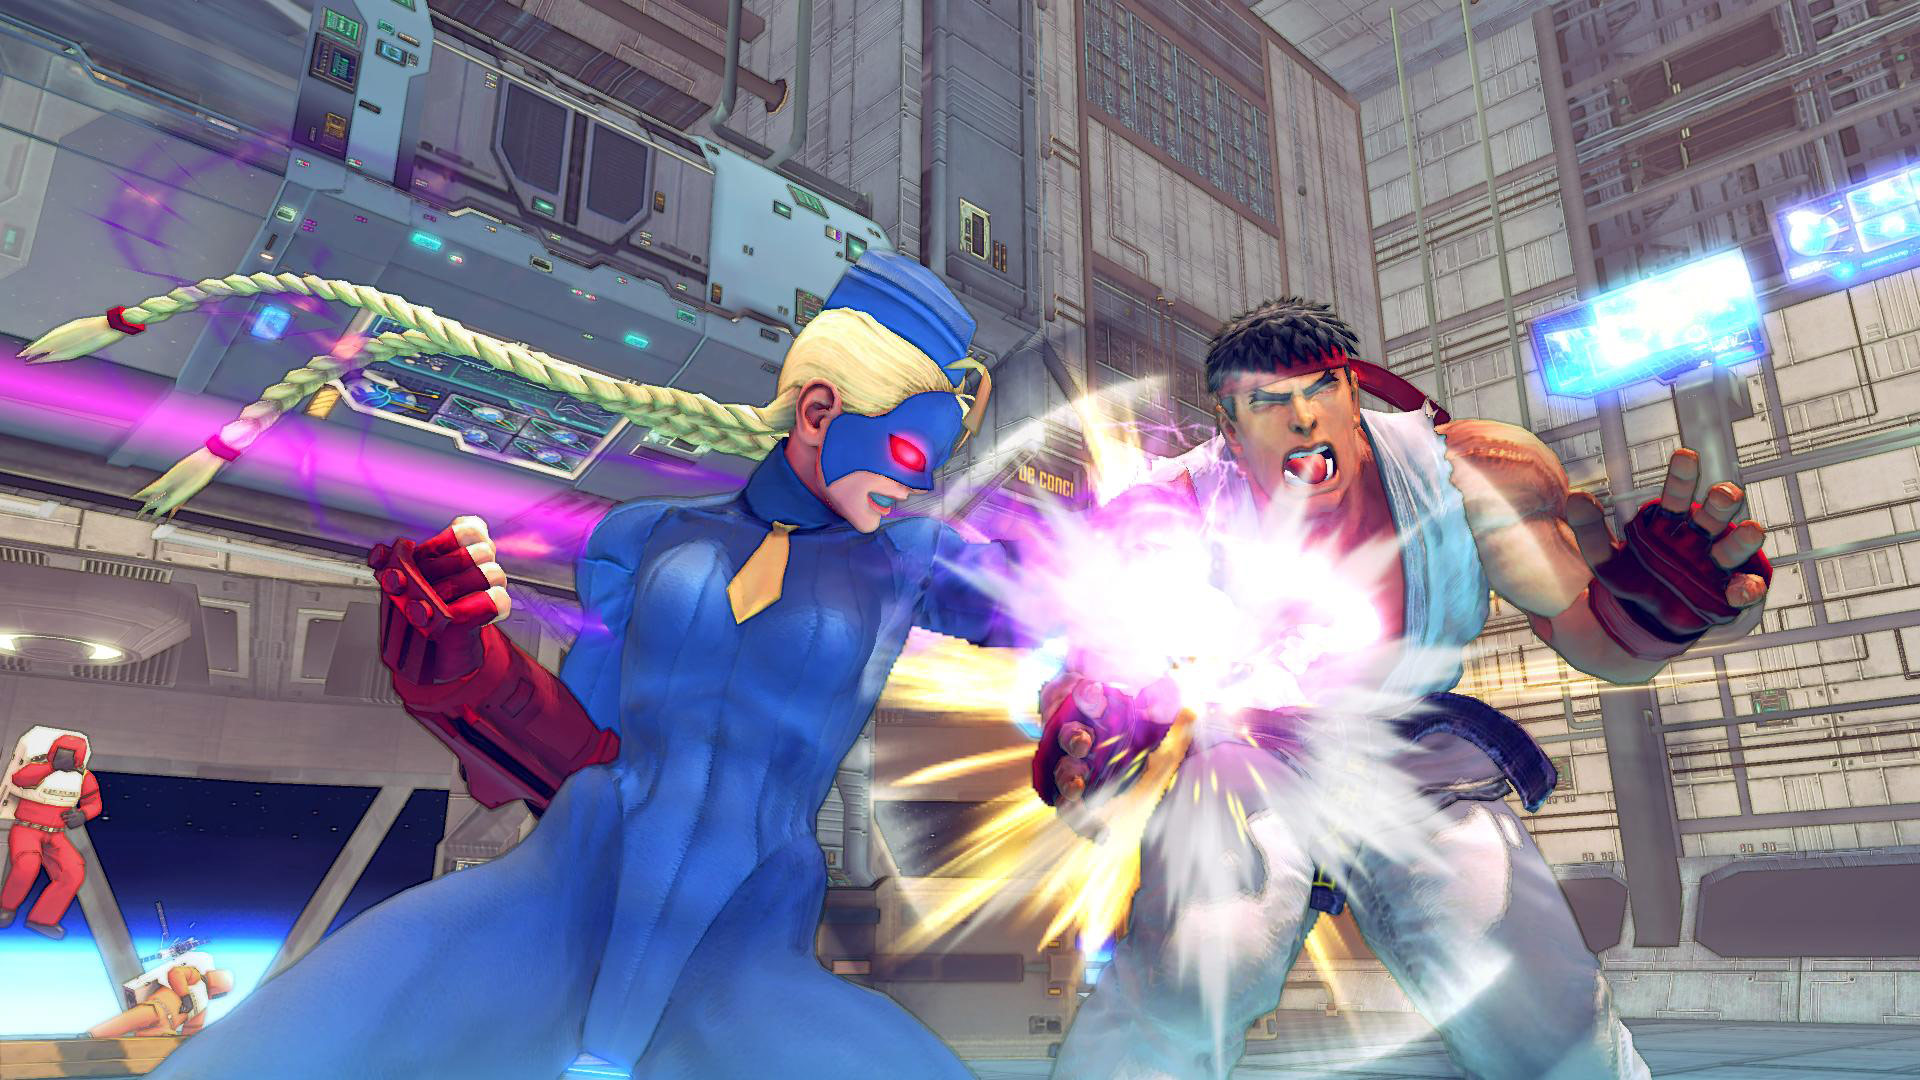 Decapre artwork and screen shots for Ultra Street Fighter 4 image #6